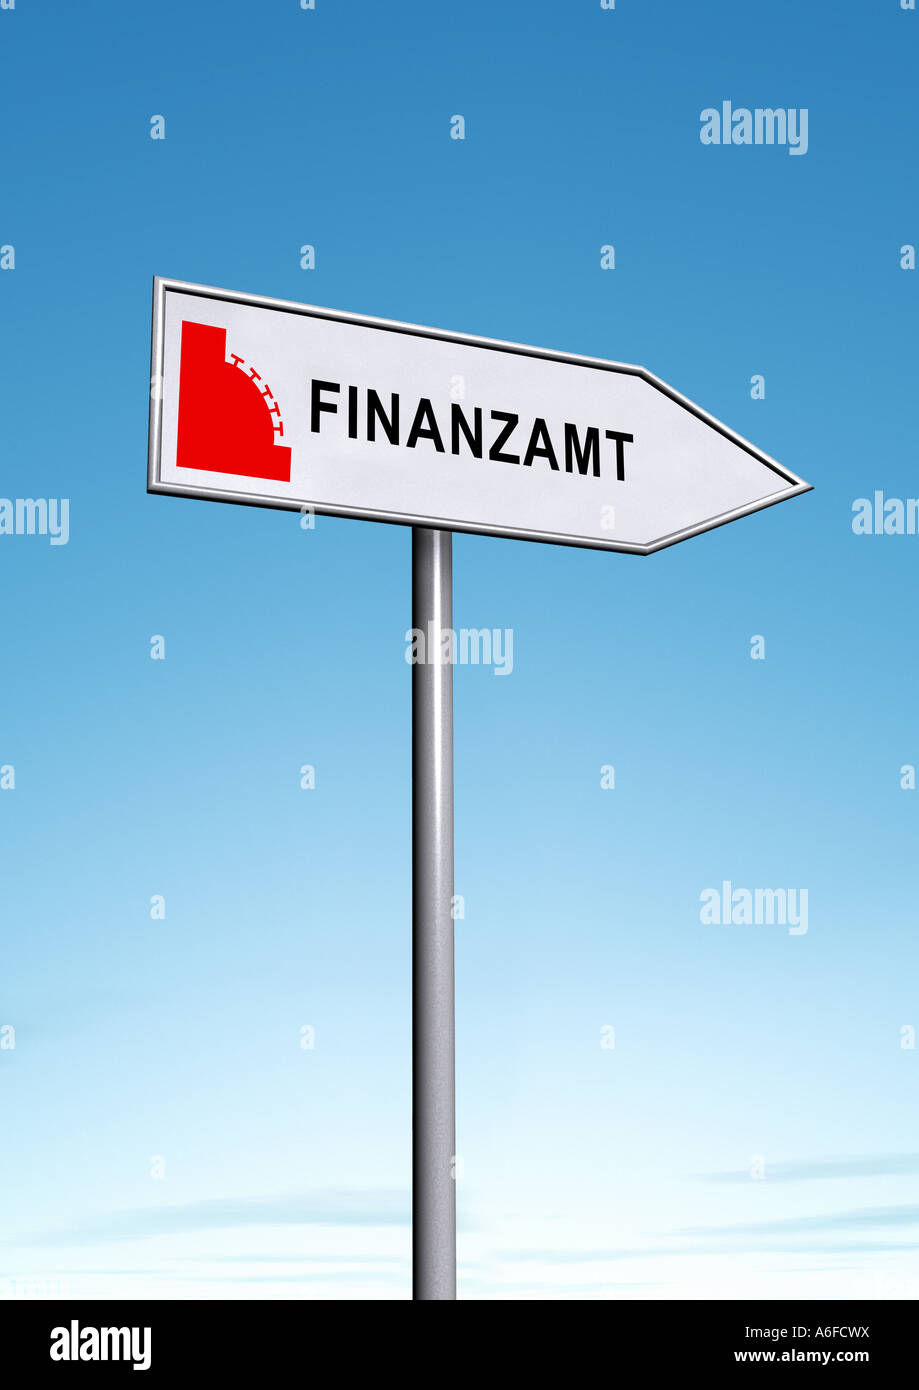 tax office Finanzamt - Stock Image